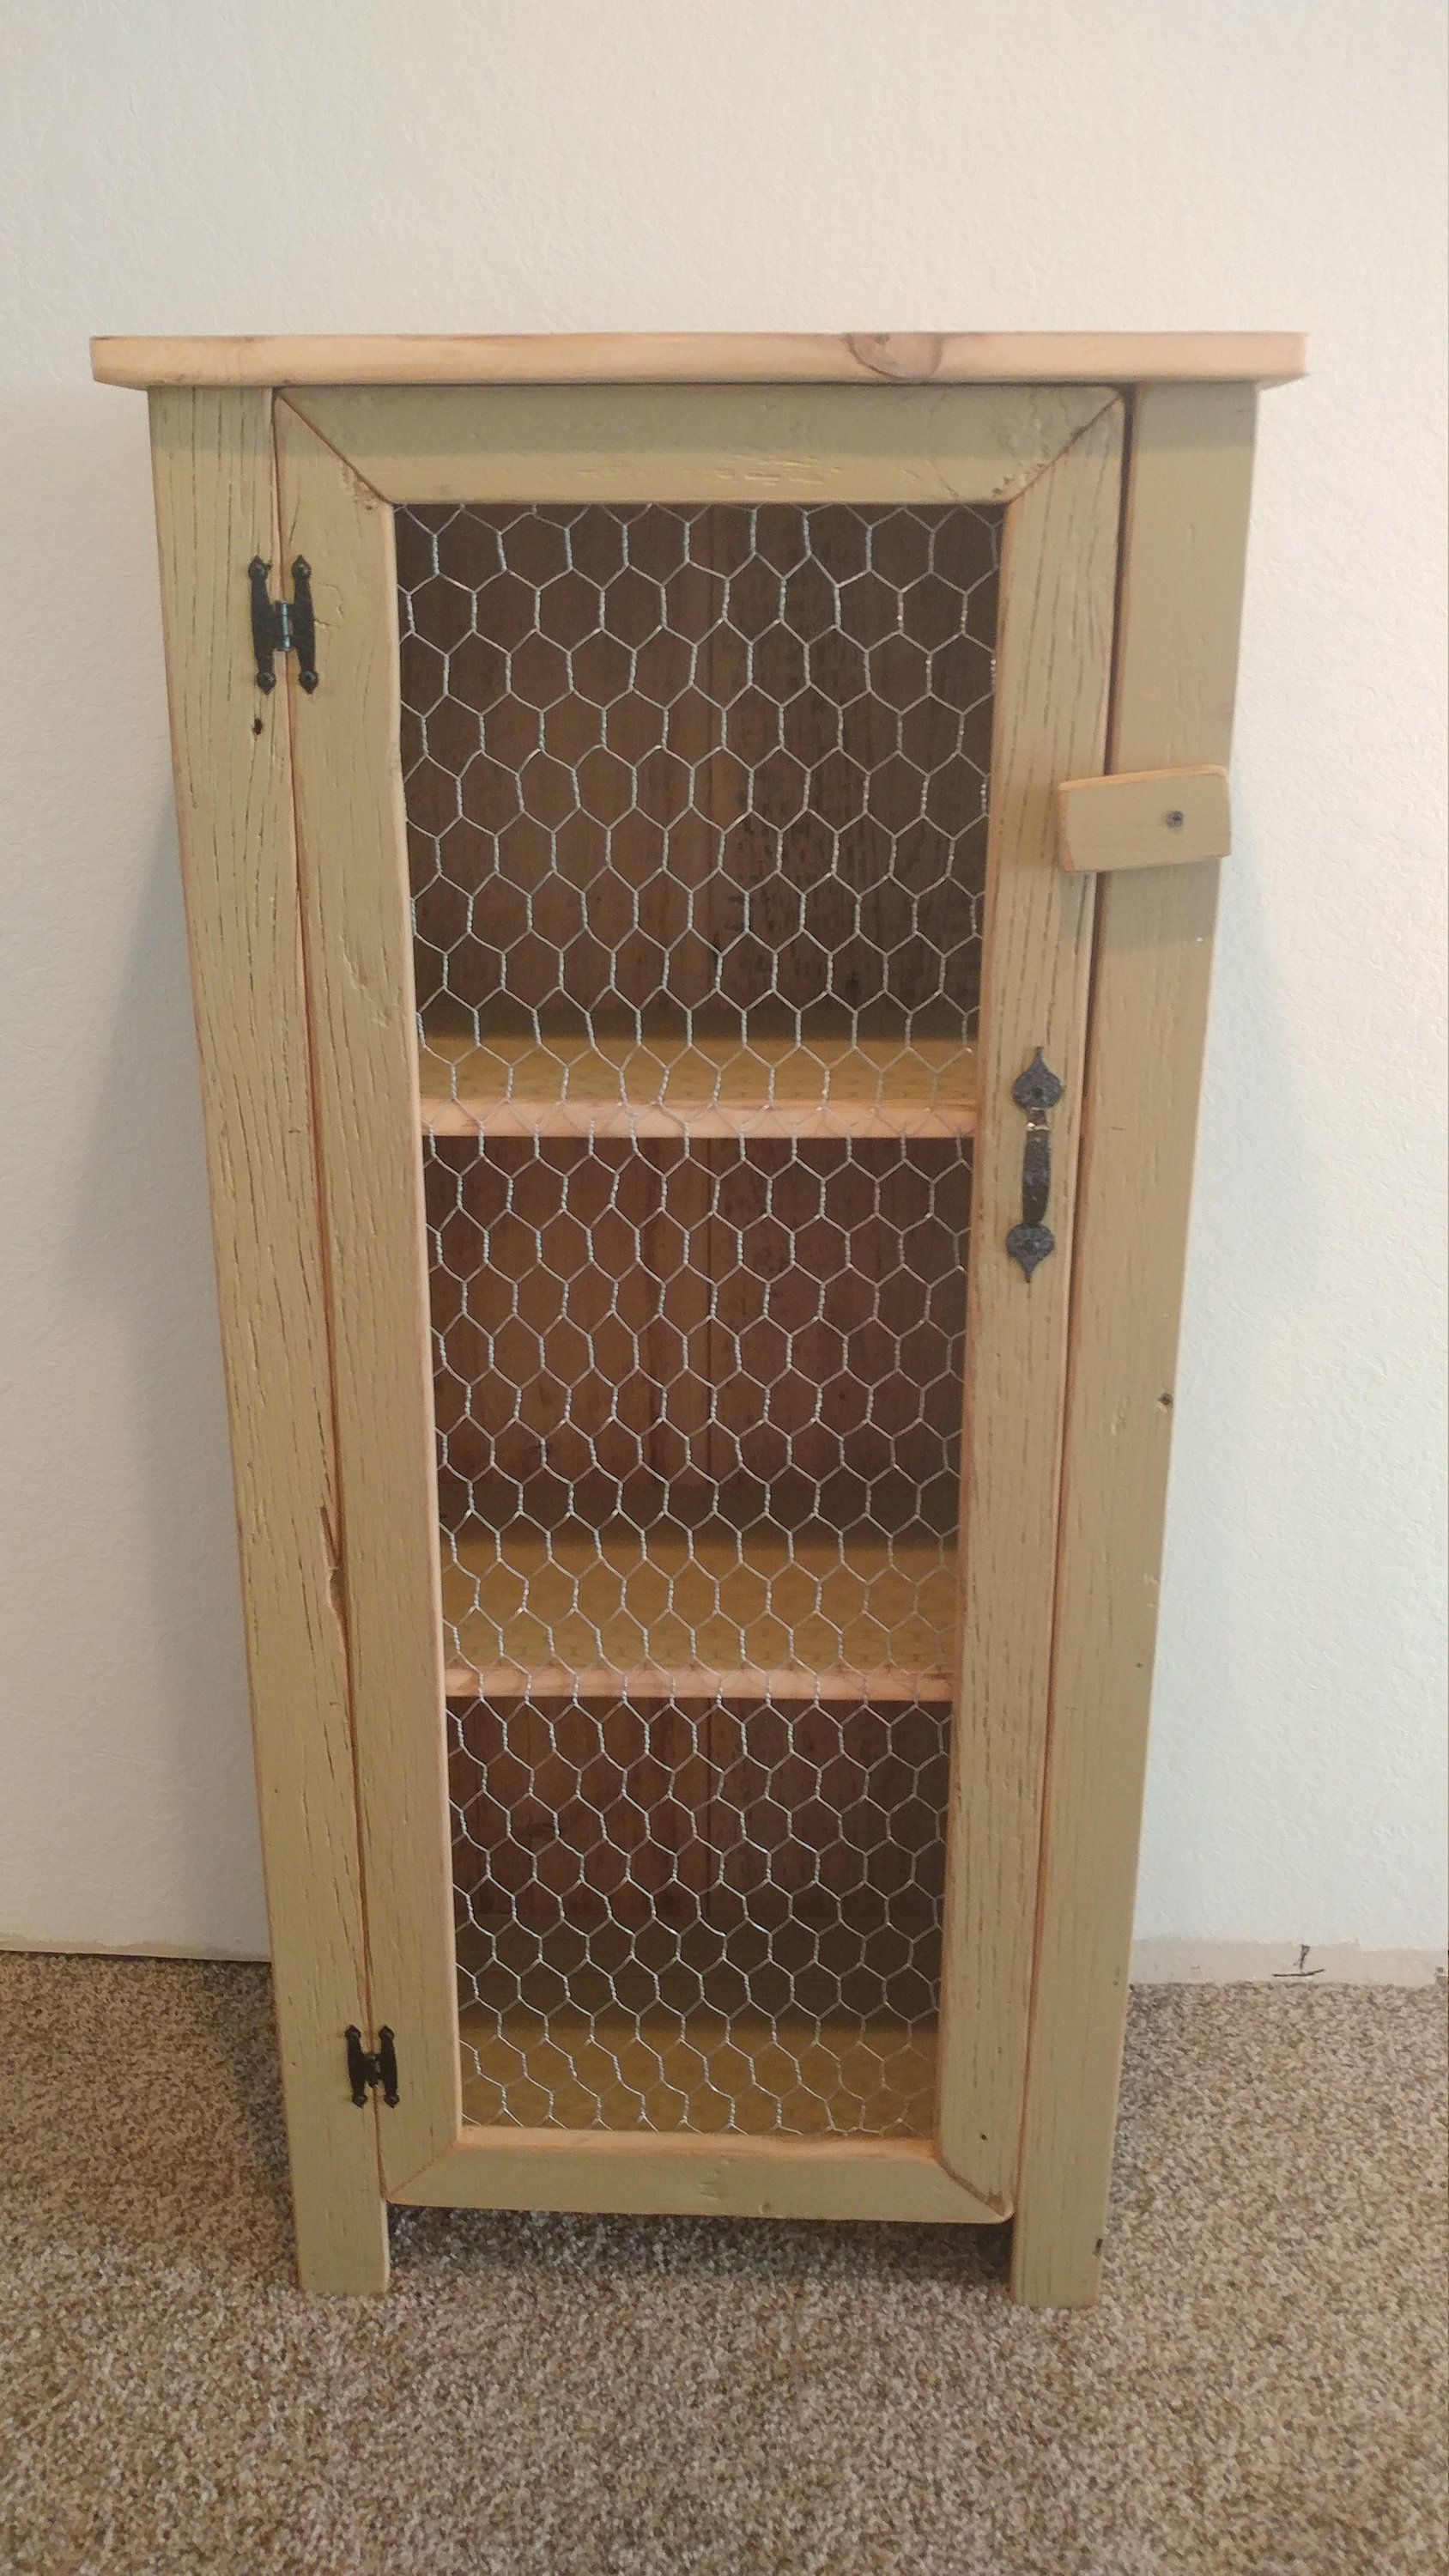 Barn Wood Chicken Wire Cabinet Image 0 Wood Furniture Diy Chicken Wire Cabinets Barn Wood